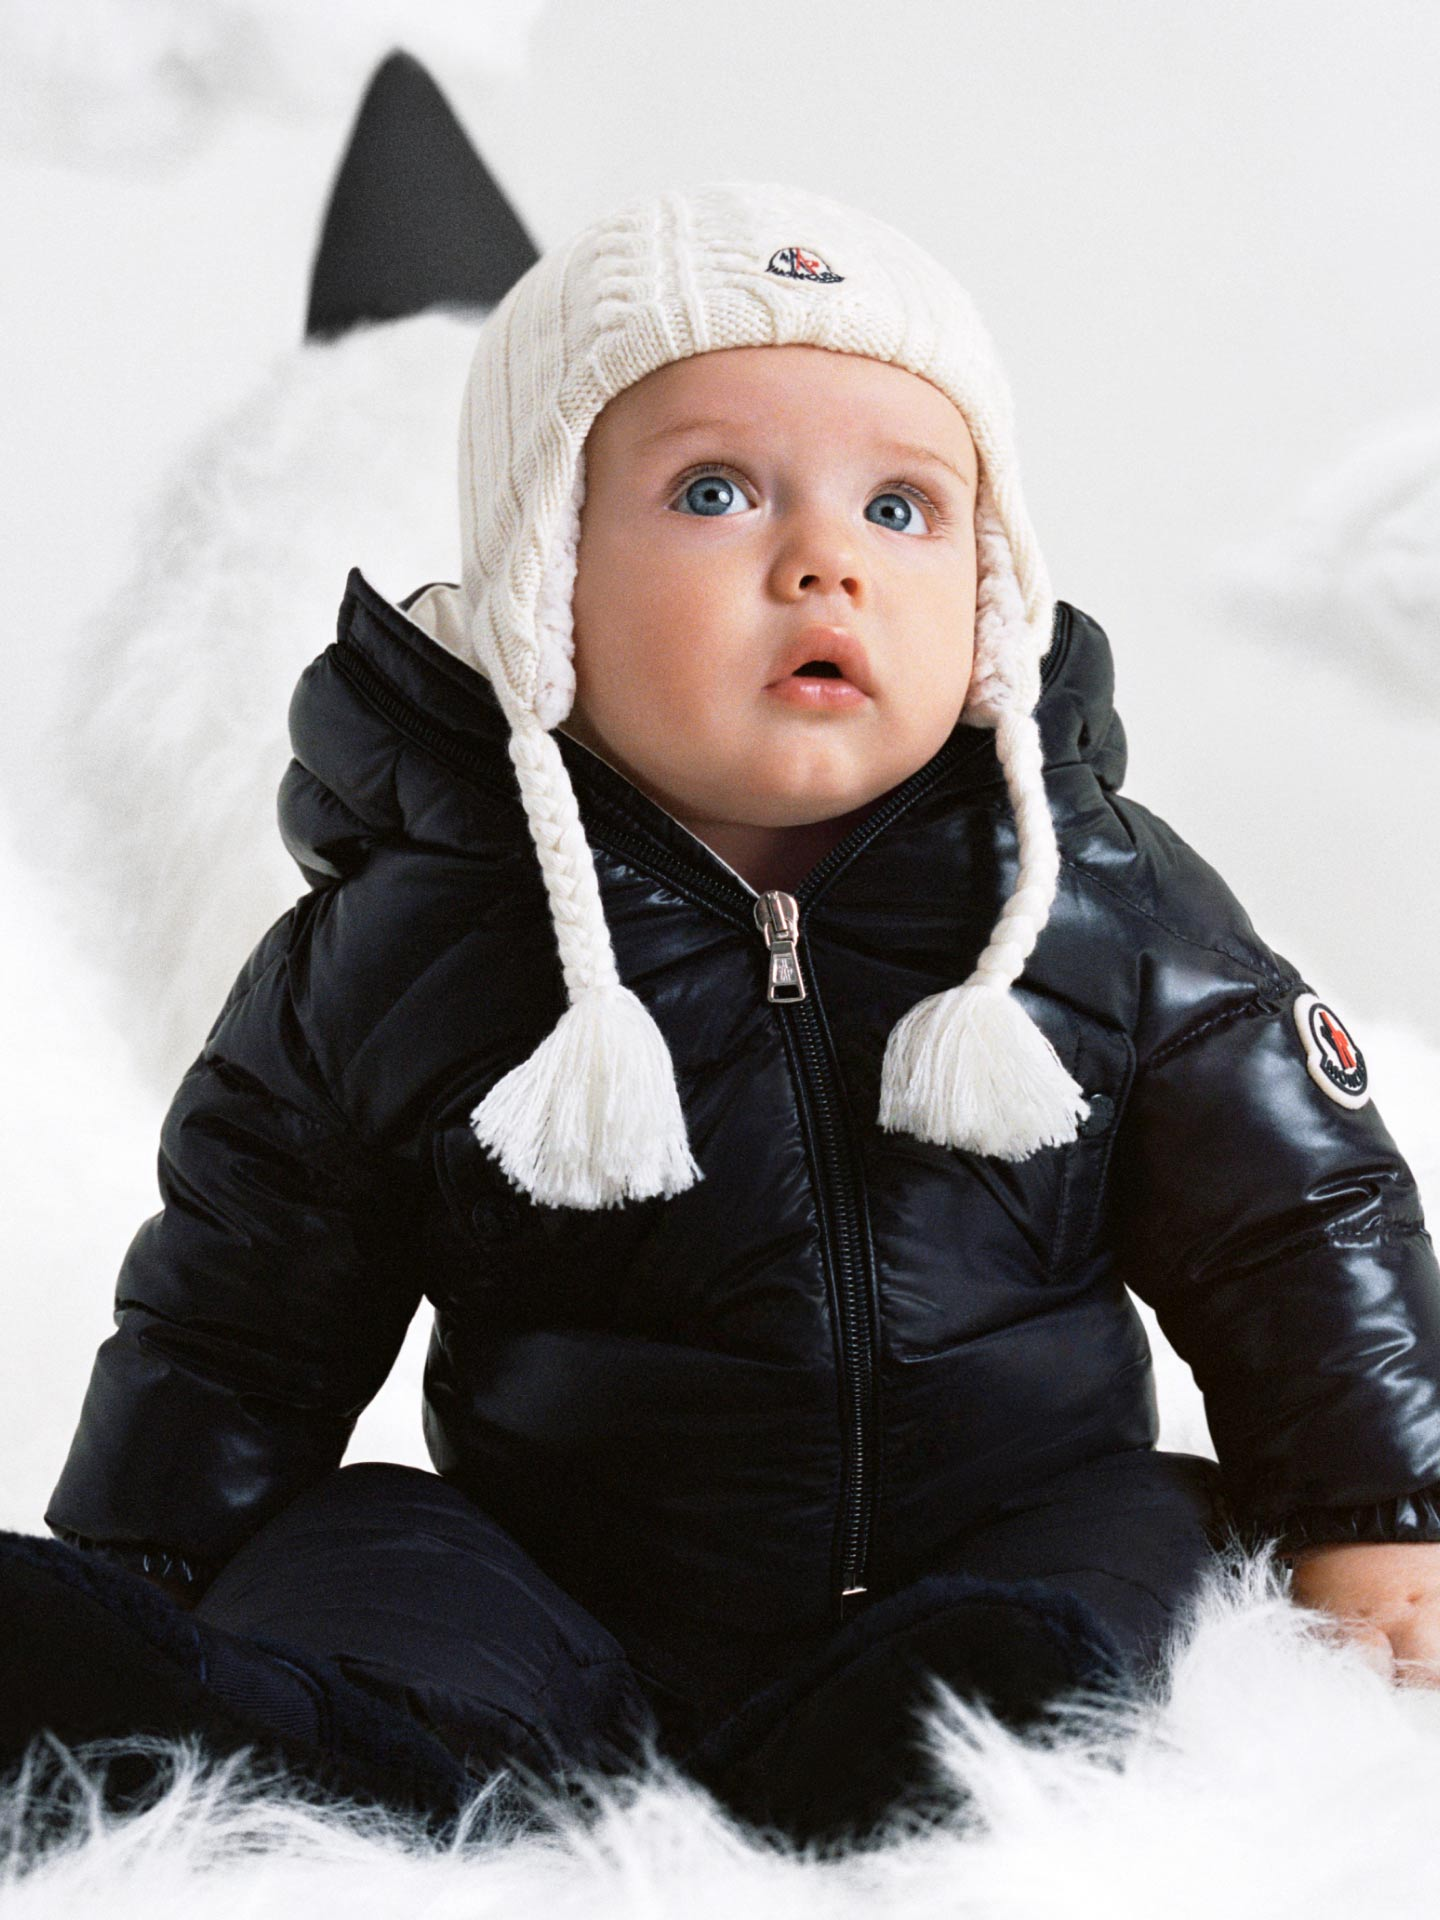 A baby boy dressed in a black Moncler down jacket and a white beanie